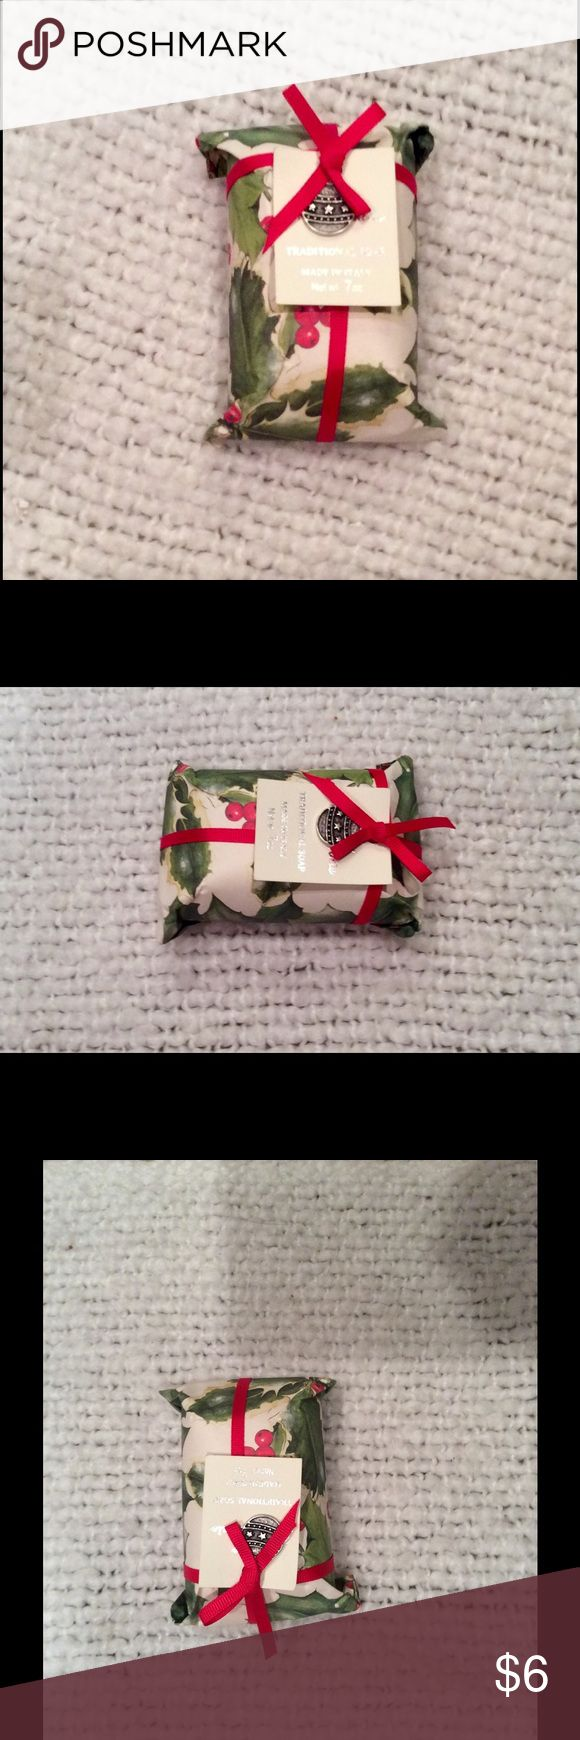 🎄Traditional Holiday Soap - Made in Italy! 🇮🇹 🌲This artisanal soap was made in Italy! 🛀🏼 The scent is Cinnamon-Orange 🍊 and it smells divine!  Treat yourself or a loved one to this beautifully packaged holiday-themed soap!  🤗  *Bundle and save!  May also be counted as FREE (with purchase) gift at the seller's discretion. Other